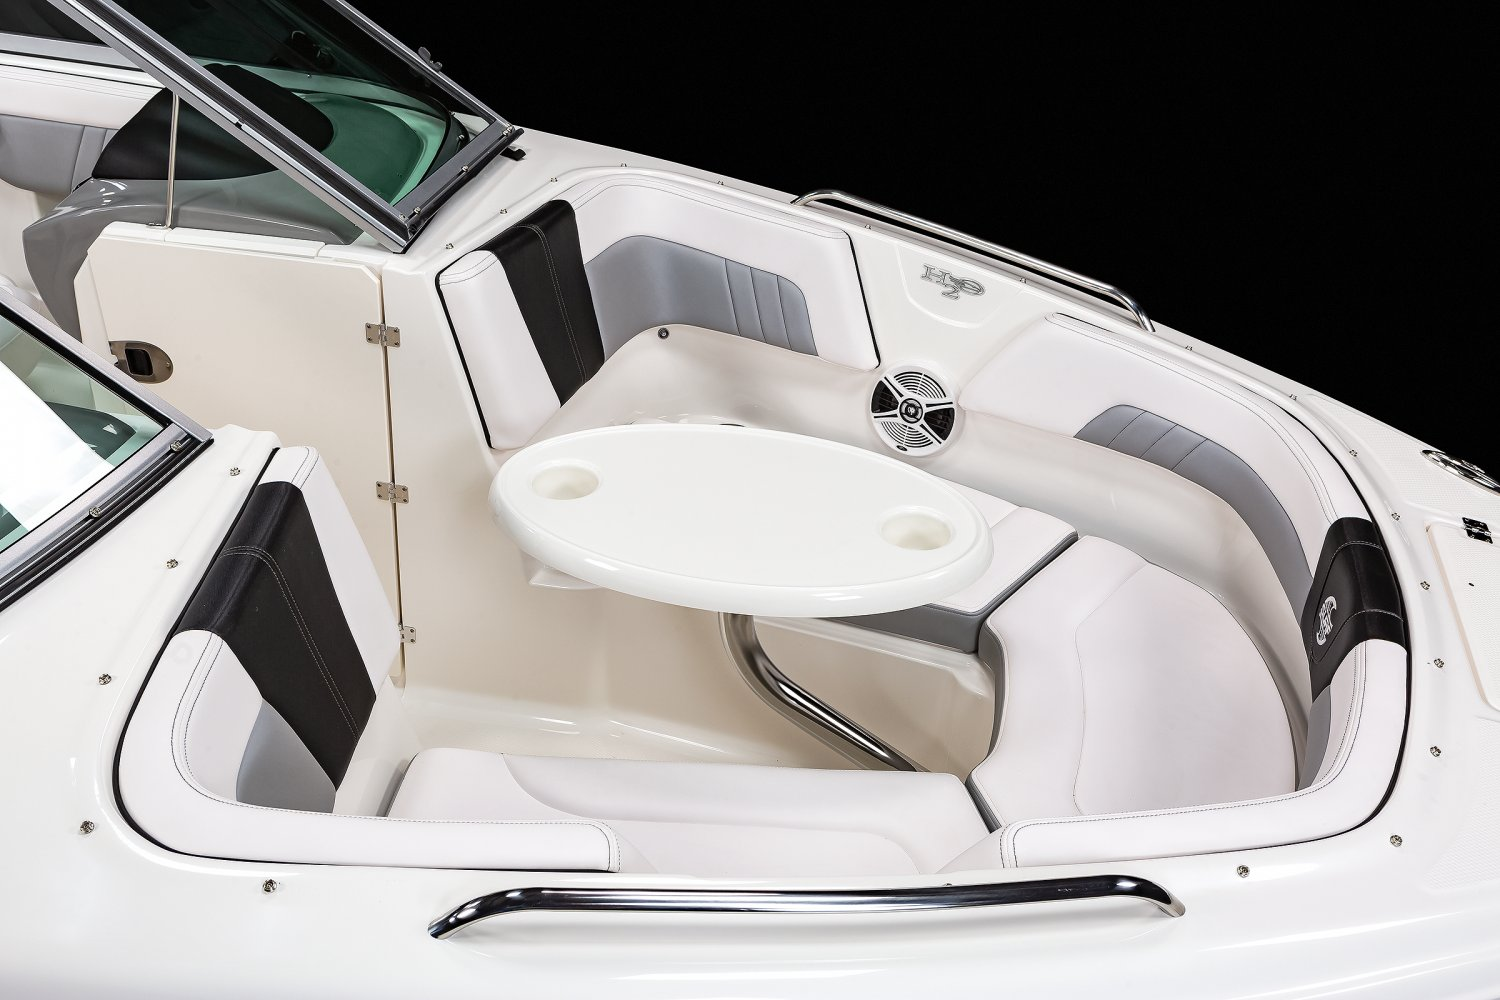 Image of a White 2019 23 SURF